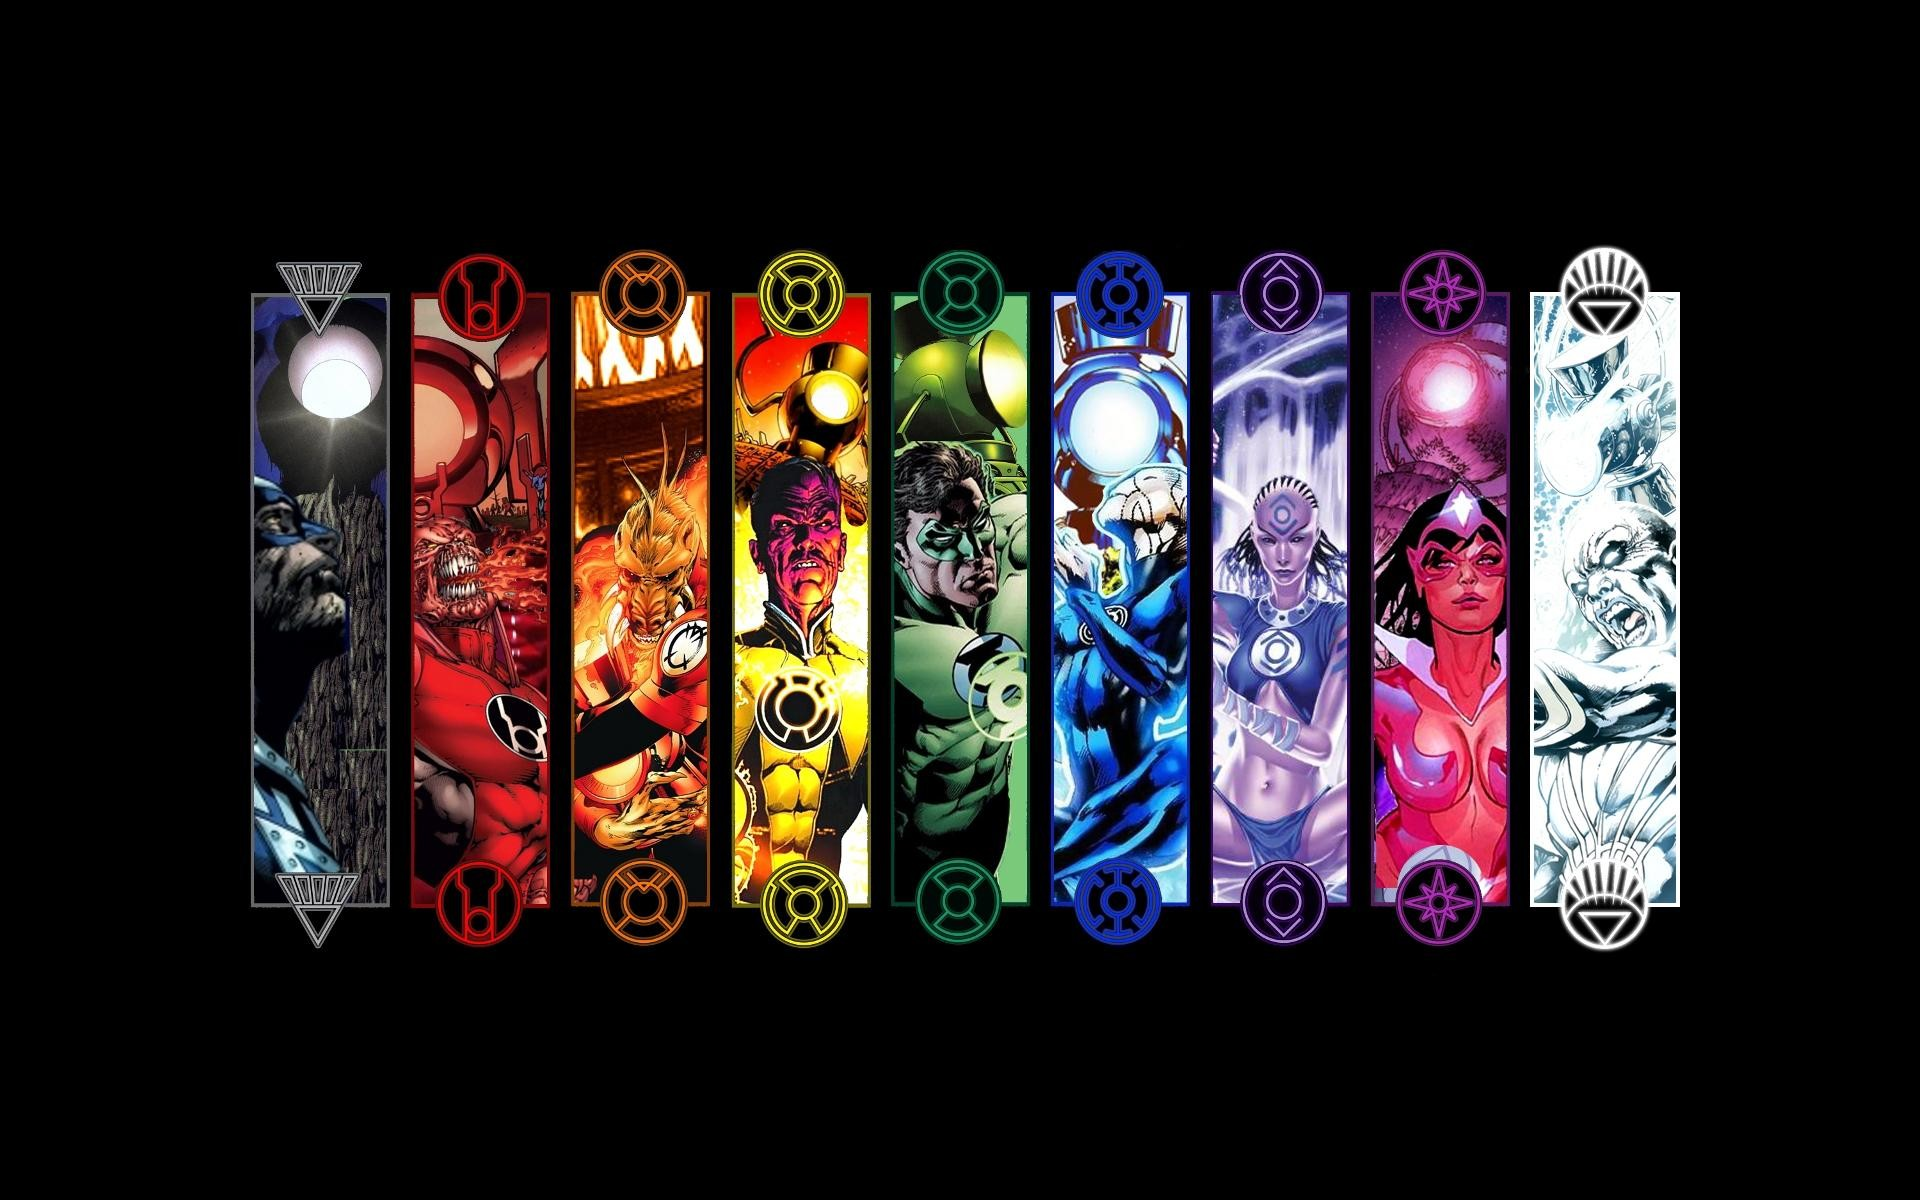 1920x1200 Dc Comics wallpaper HD background download desktop • iPhones .